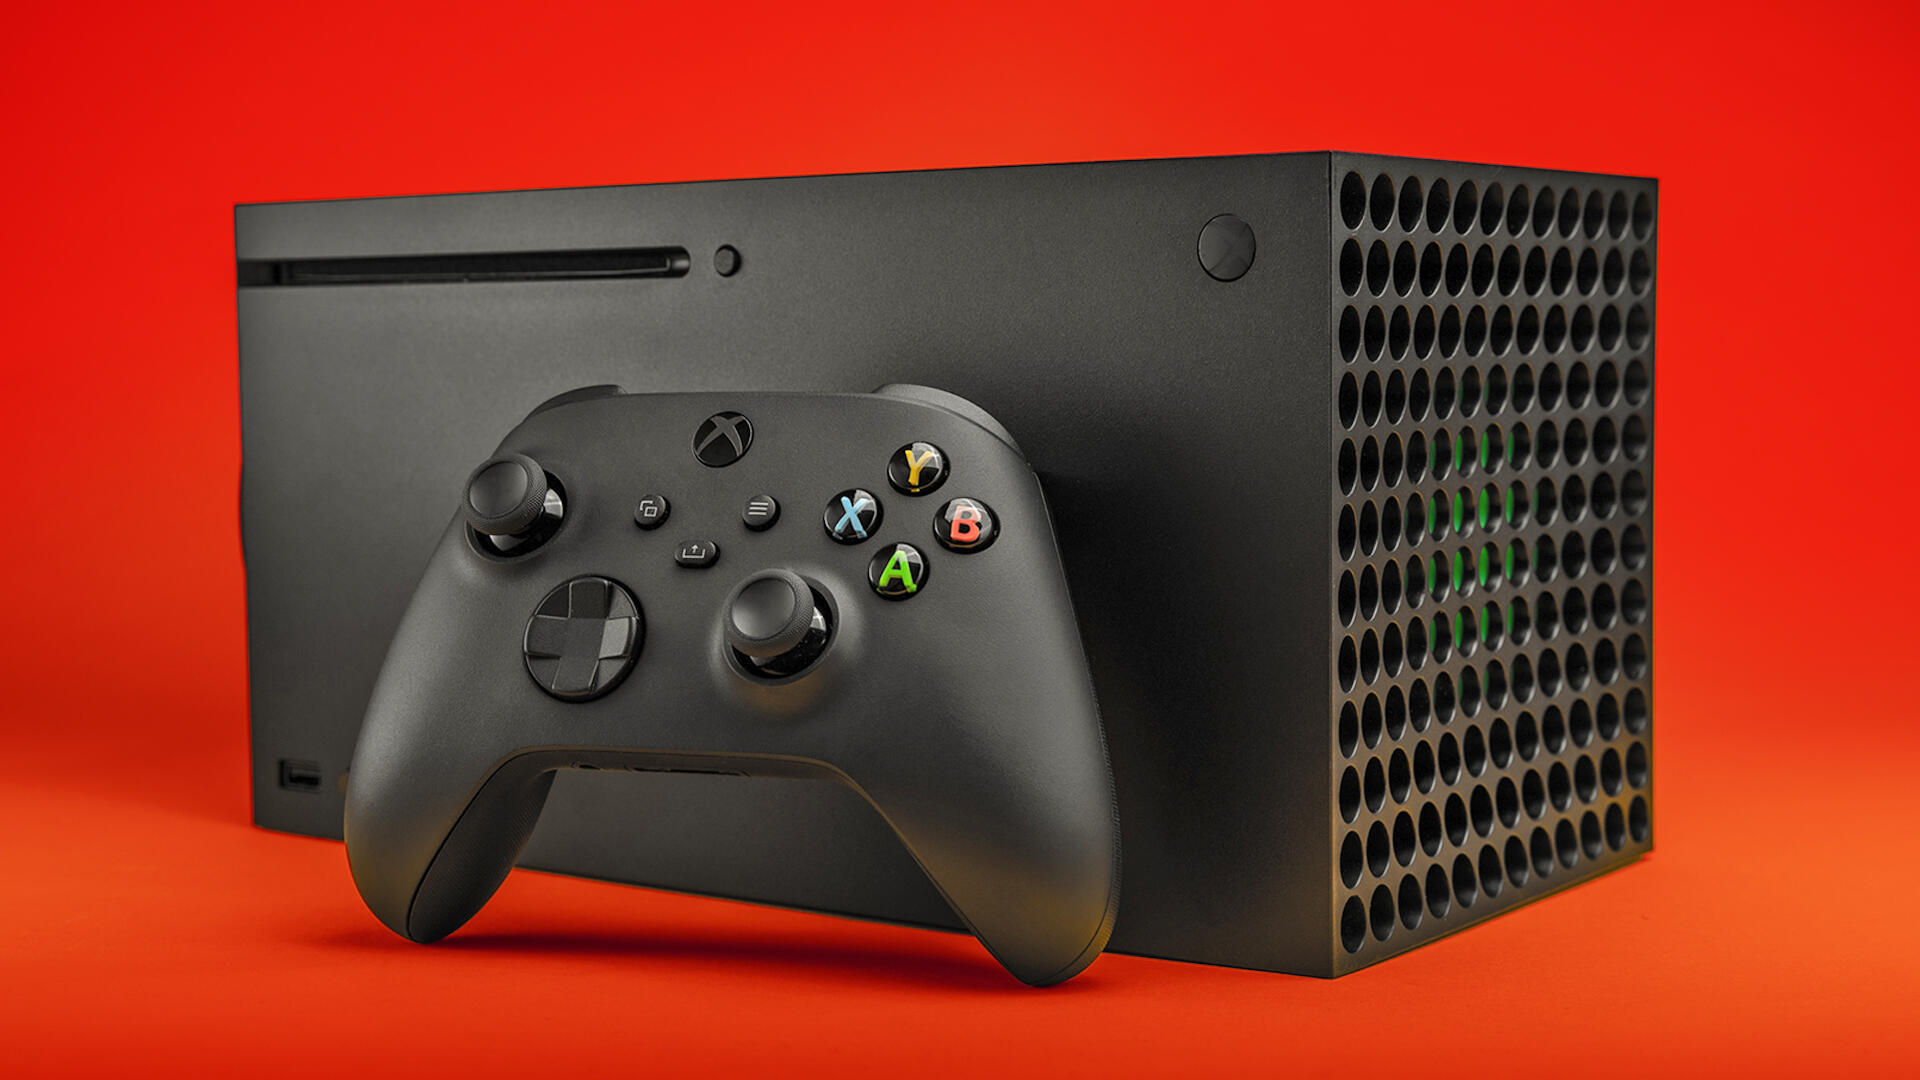 Video: Xbox Series X unboxing: What comes in the box